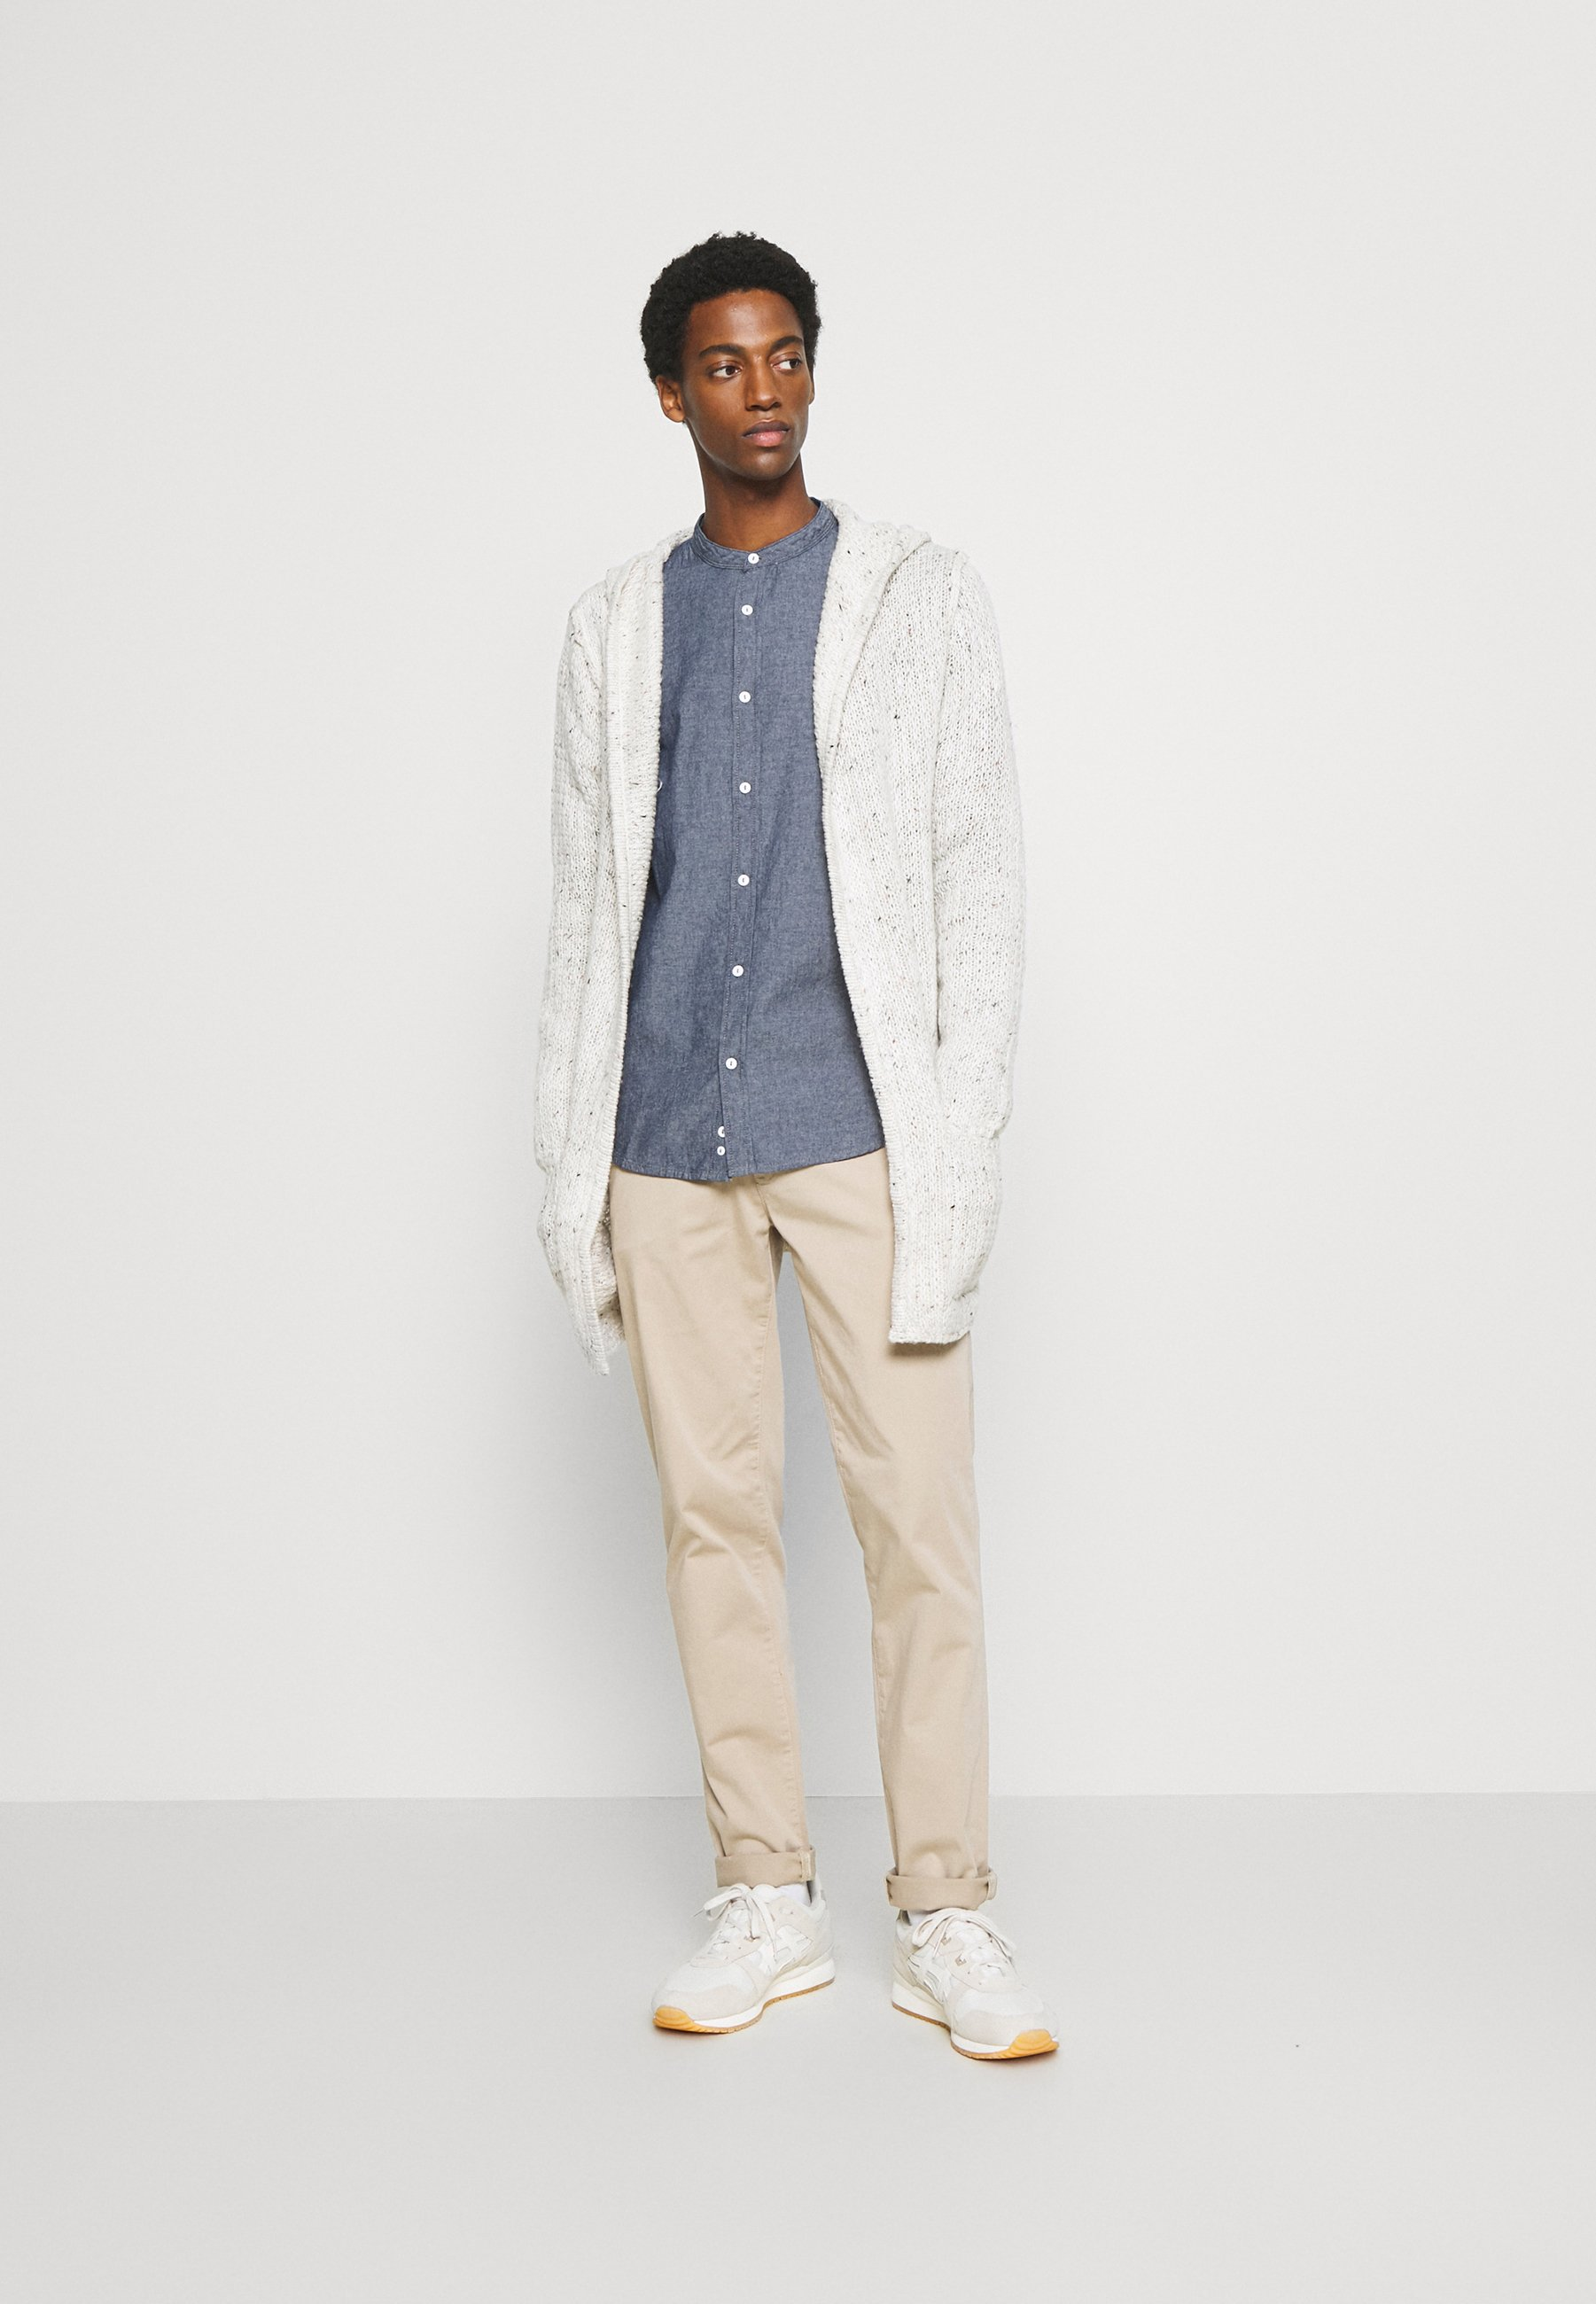 Key Largo Terence Hill Jacket - Cardigan Off-white/offwhite